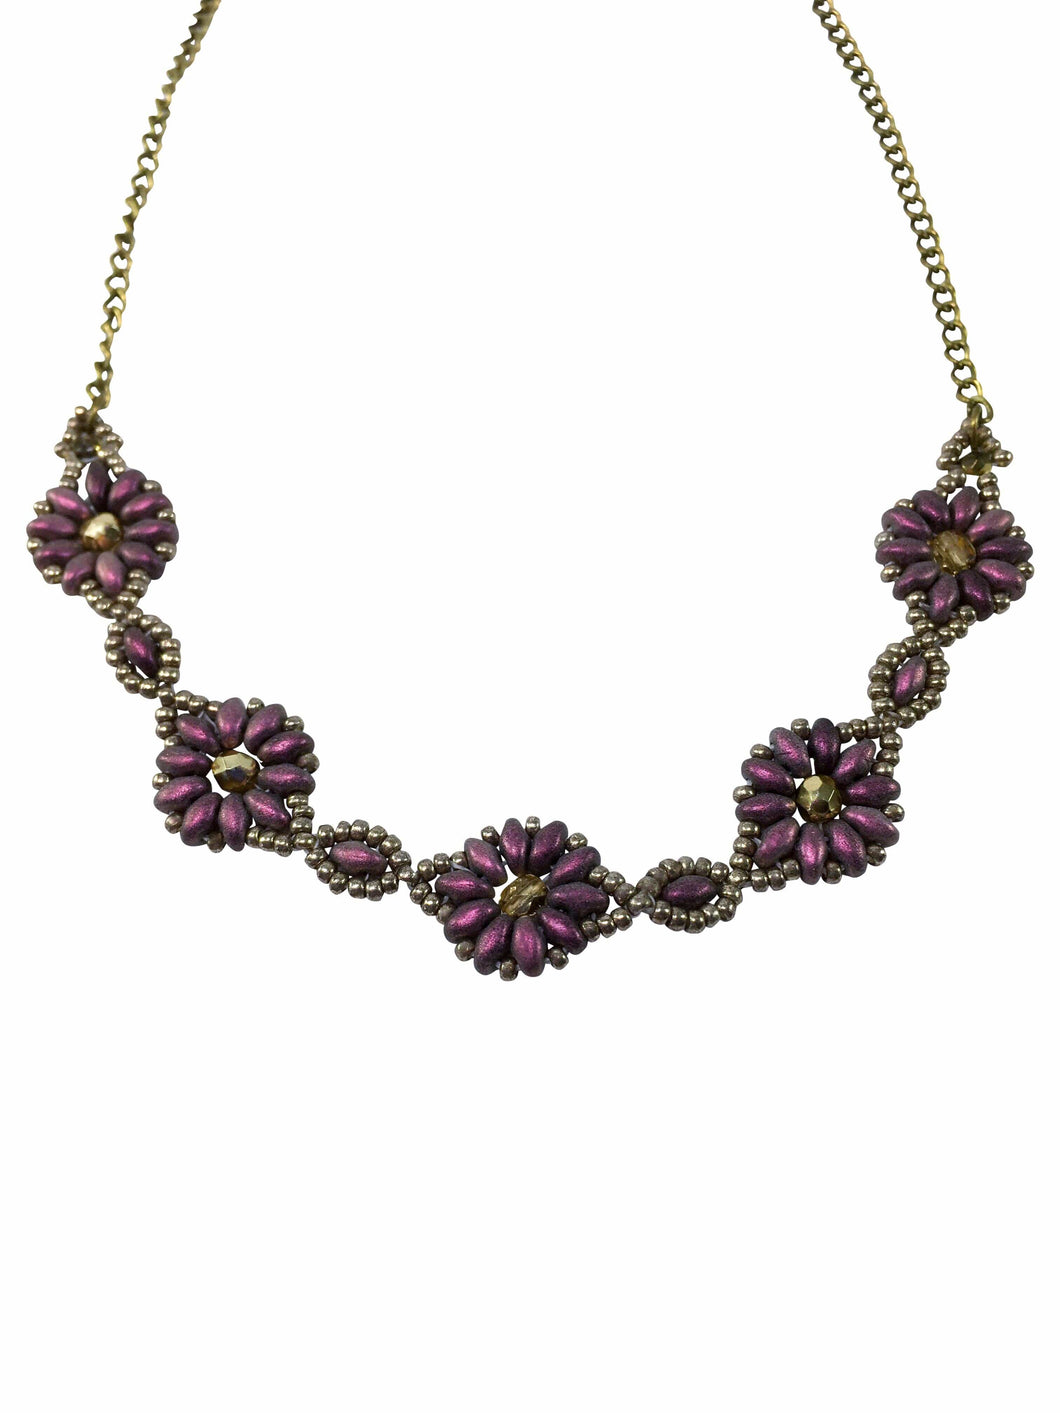 Antique Style Flower Beaded Necklace